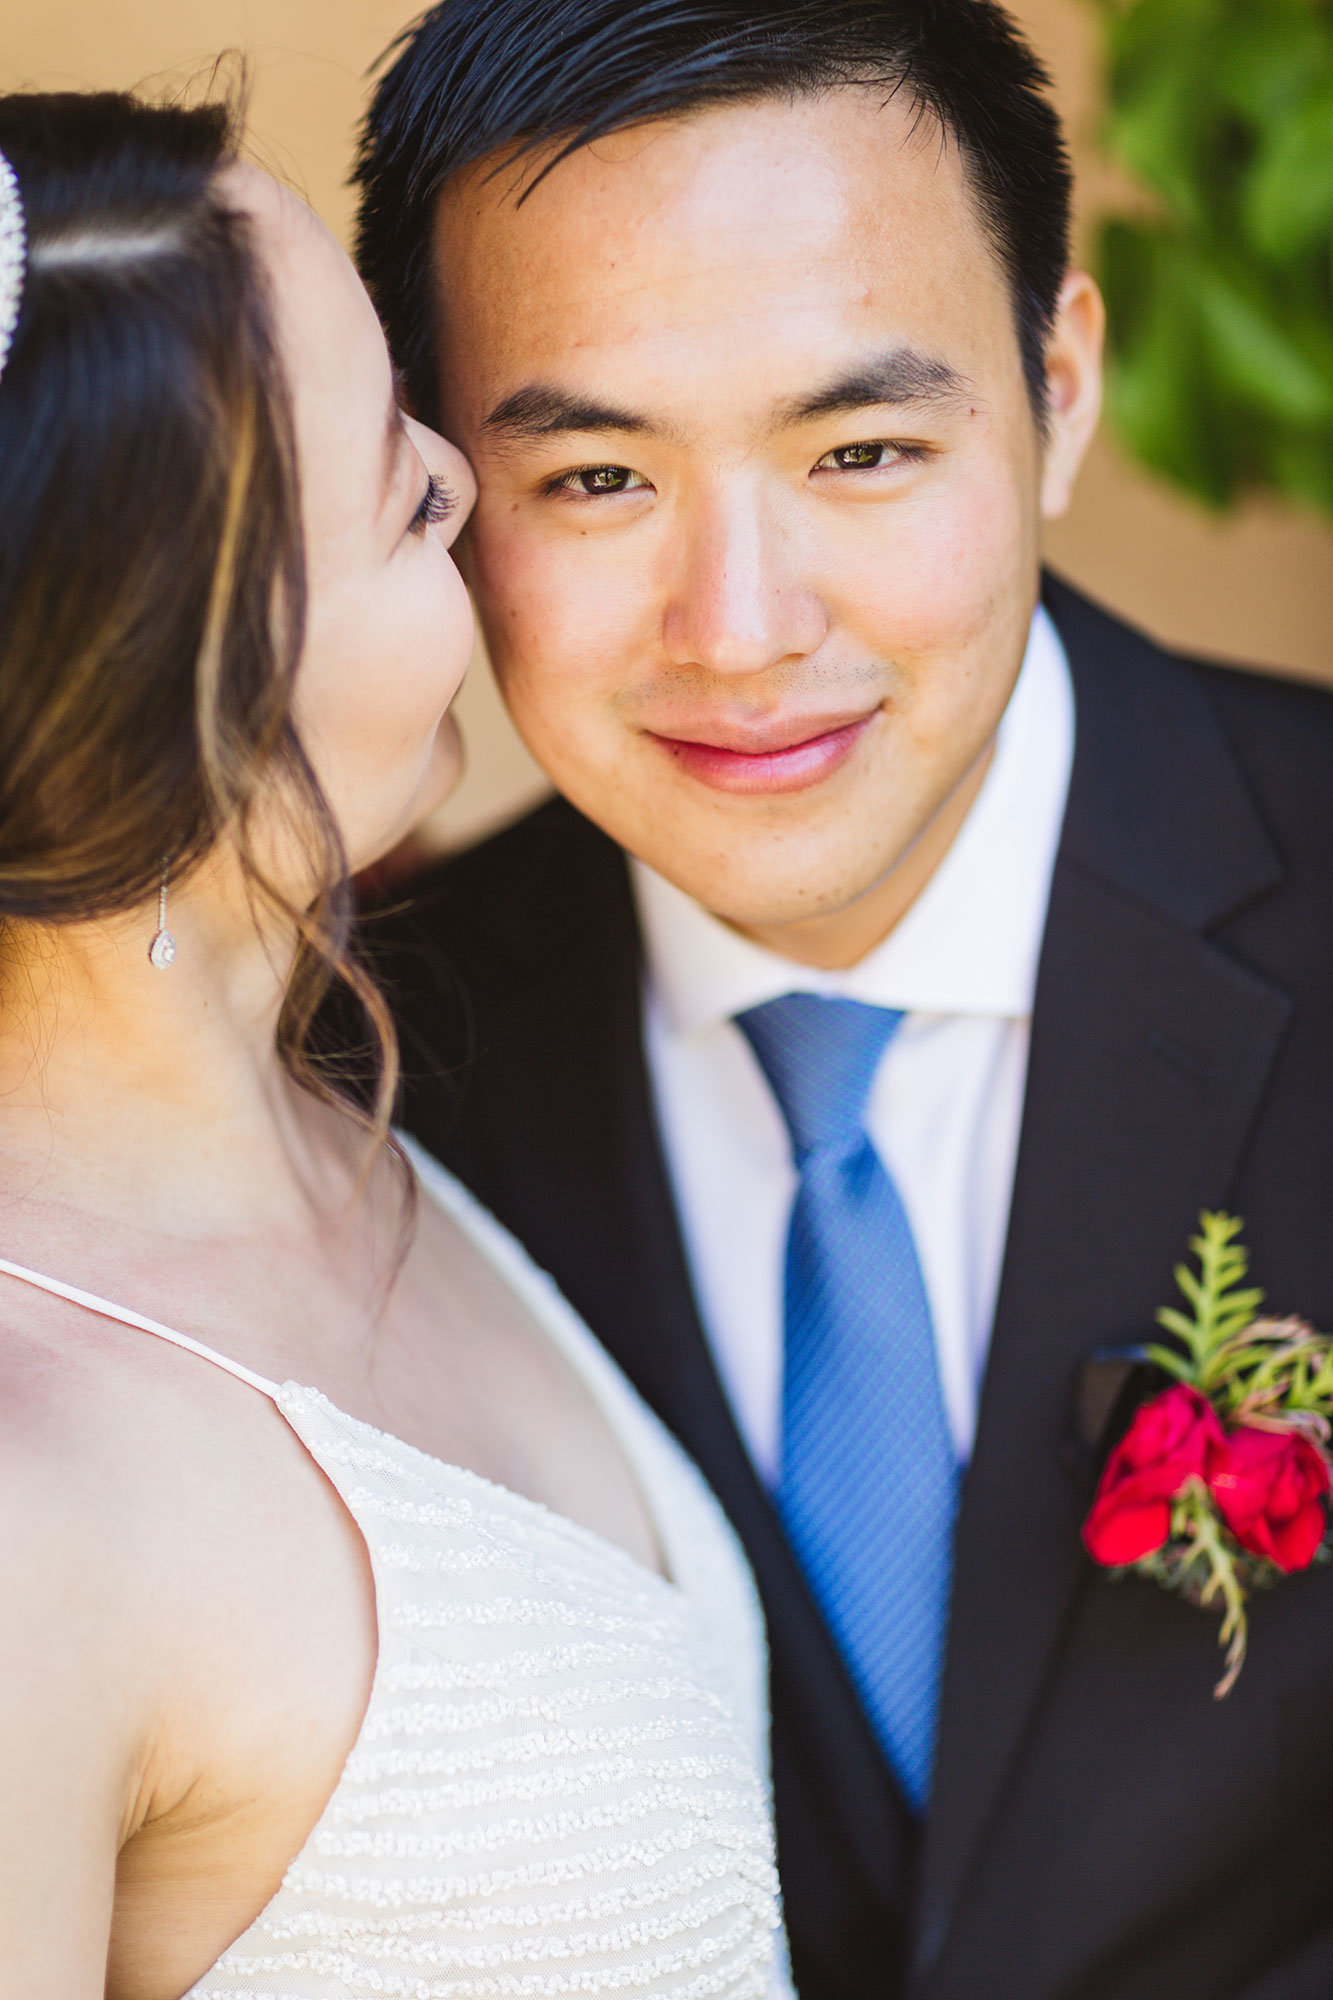 dapper groom with red boutonniere smiles at camera